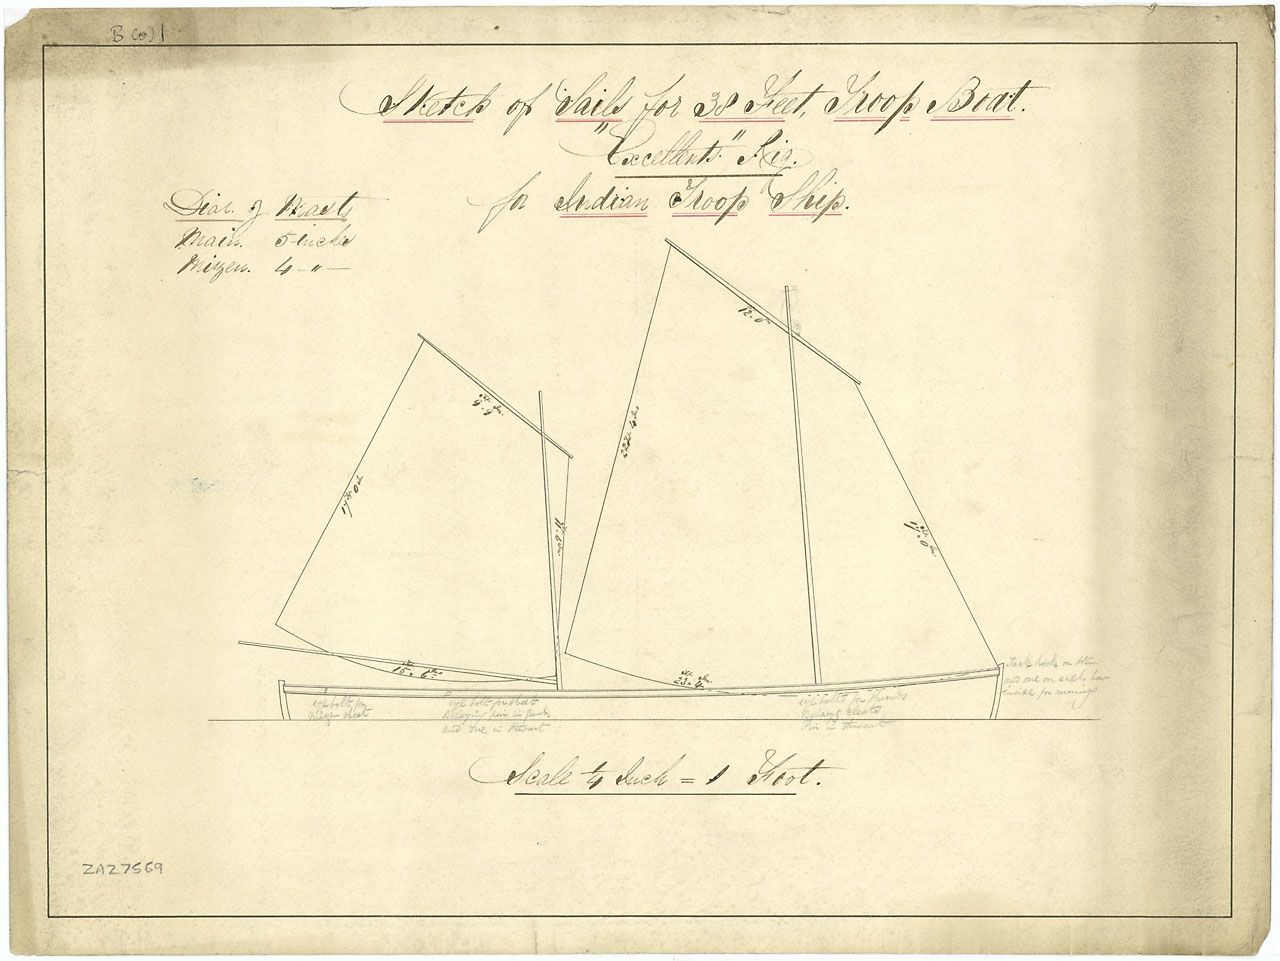 hight resolution of sailplan of a 30 ft sloop similar to beach yawls rig